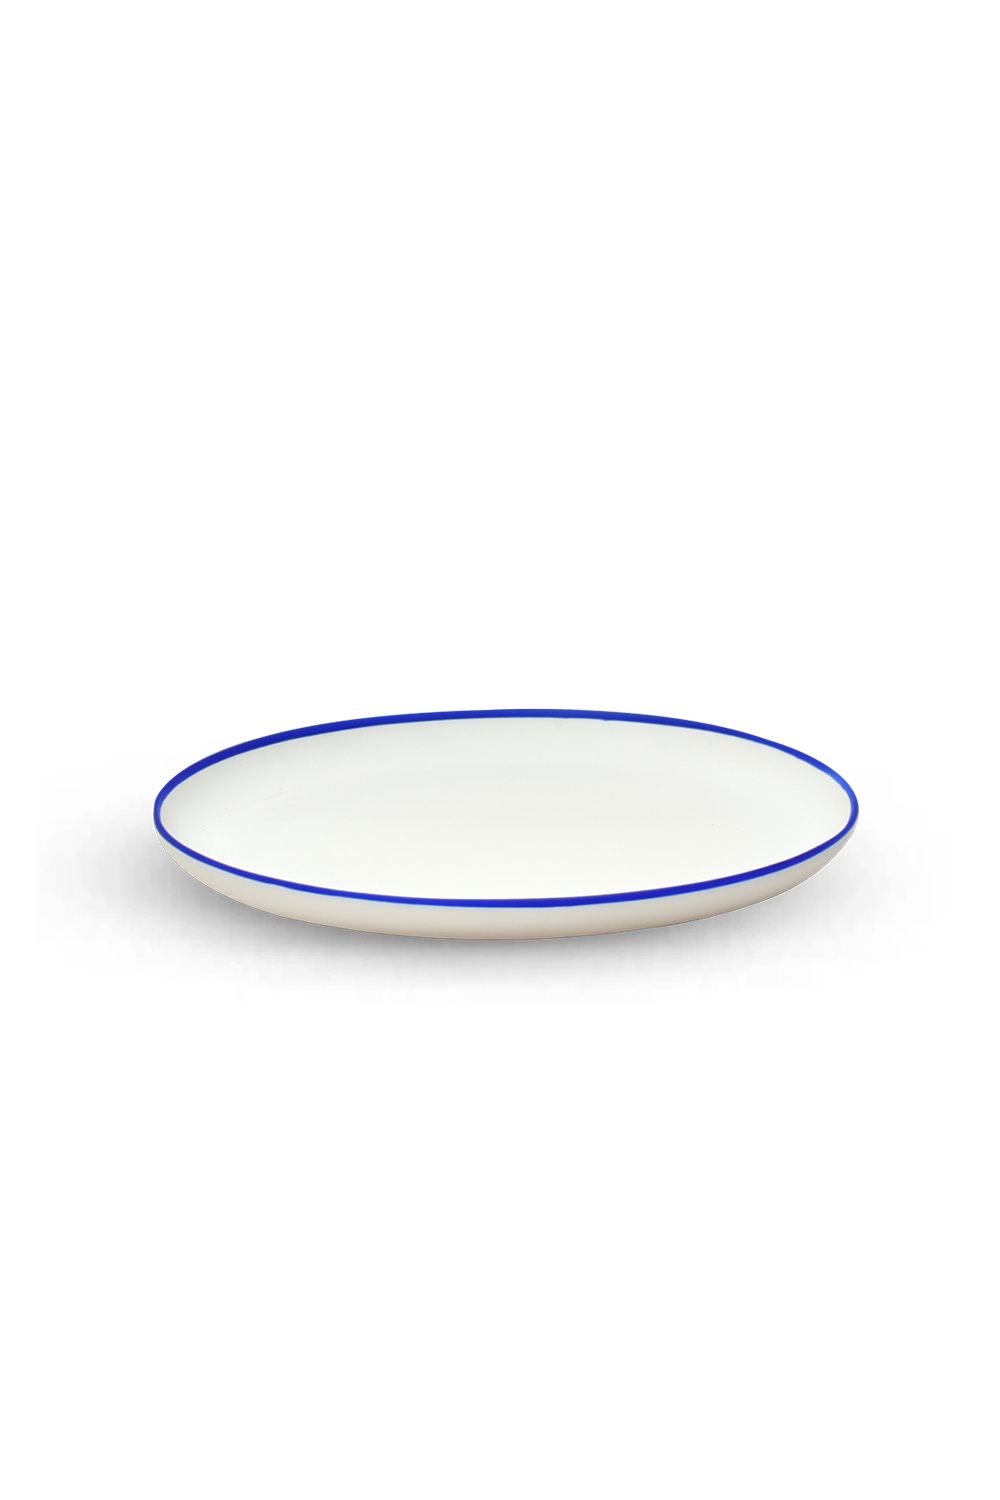 Serving Tray with Blue Rim